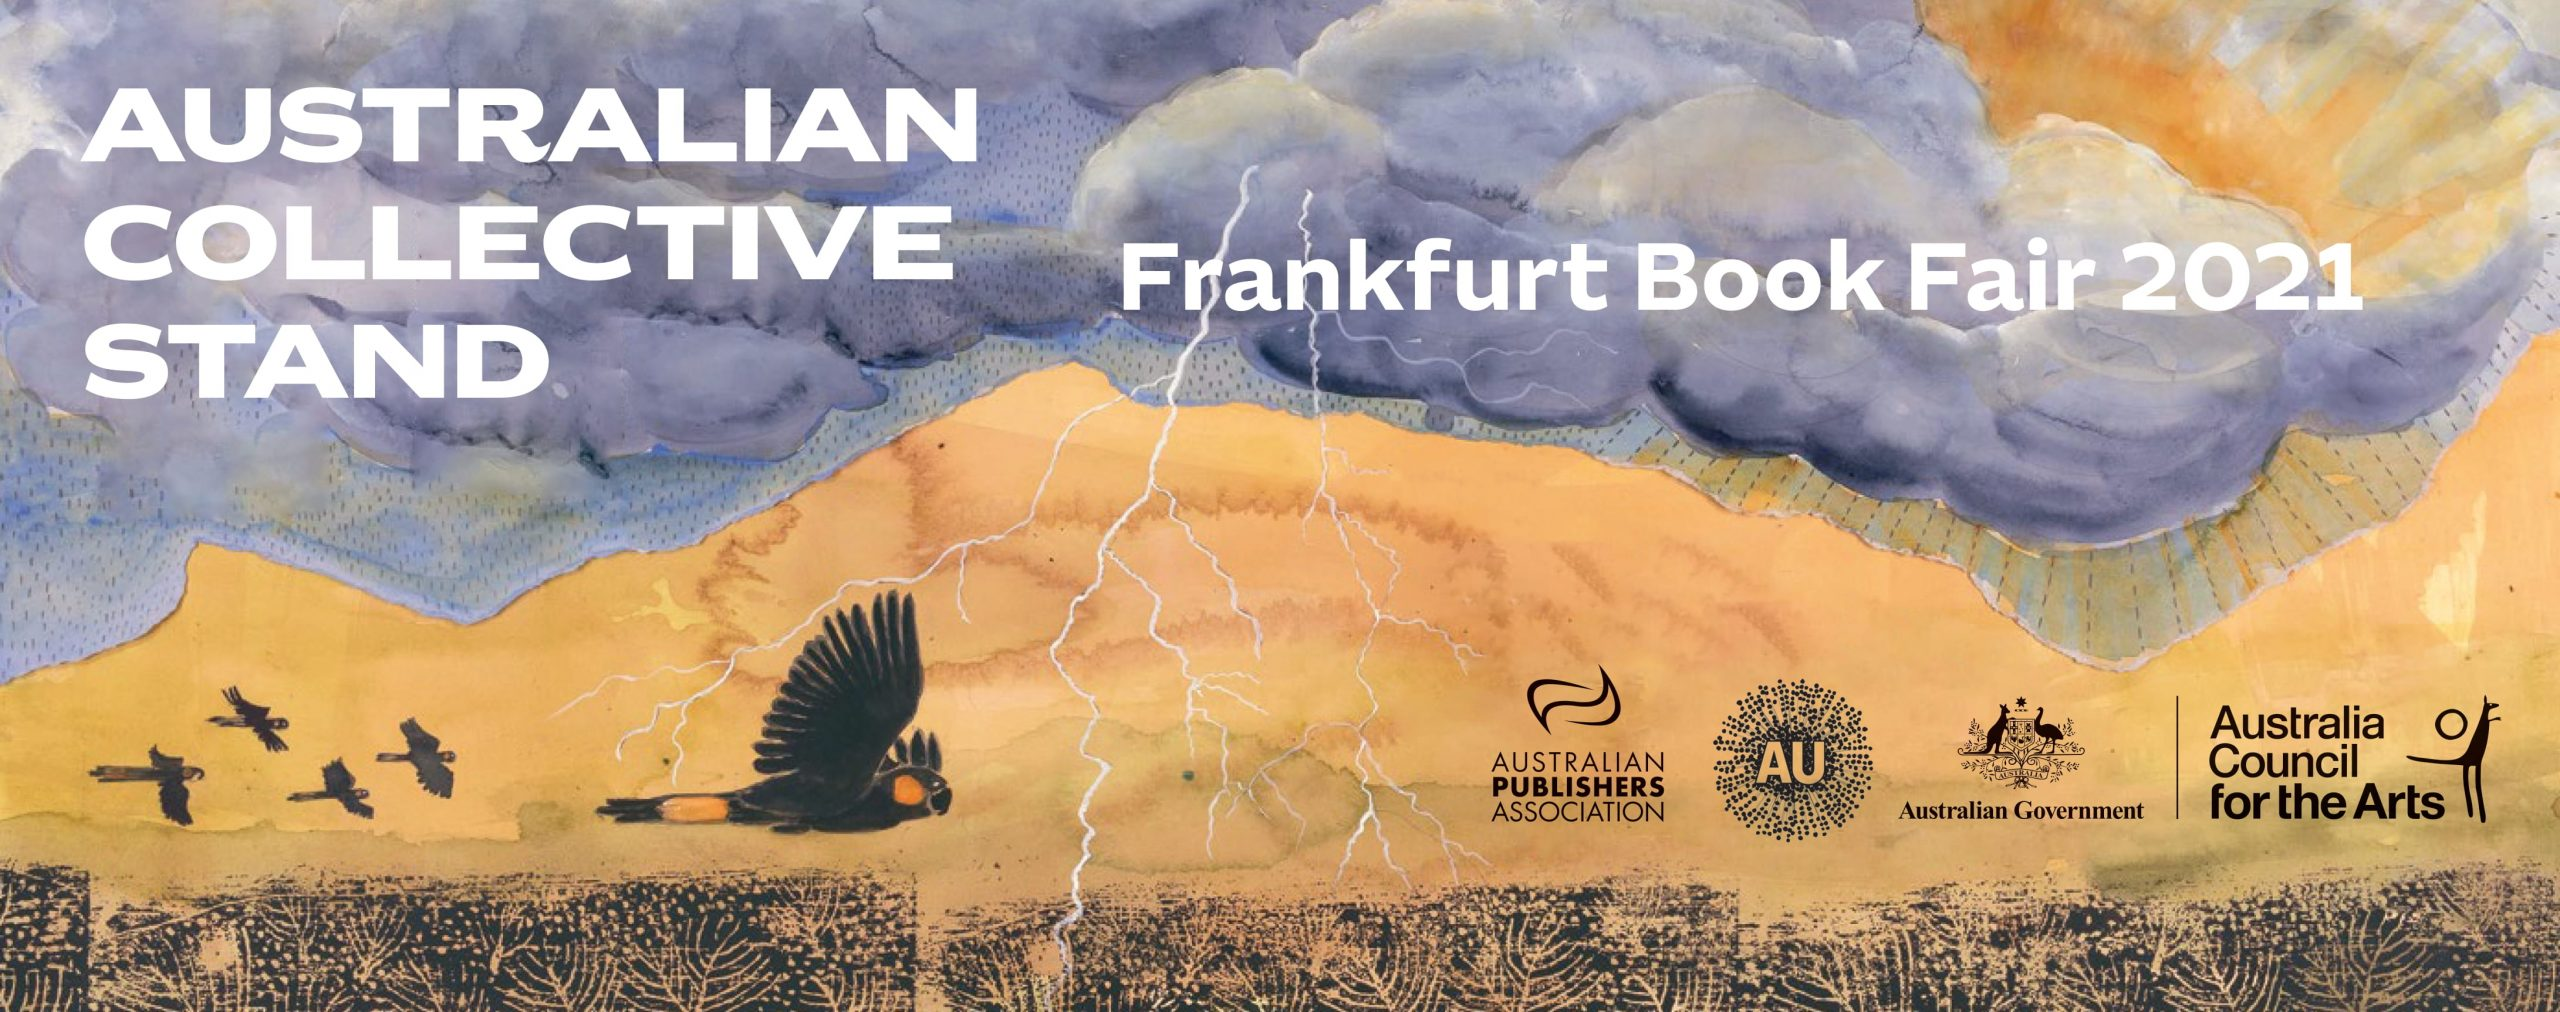 """Banner reading """"Australian Collective Stand - Frankfurt Book Fair 2021"""" and featuring the logos of the Australian Publishers Association, the Australian Nation Brand, the Australian Government and the Australia Council for the Arts, over the artwork of Lisa Kennedy"""